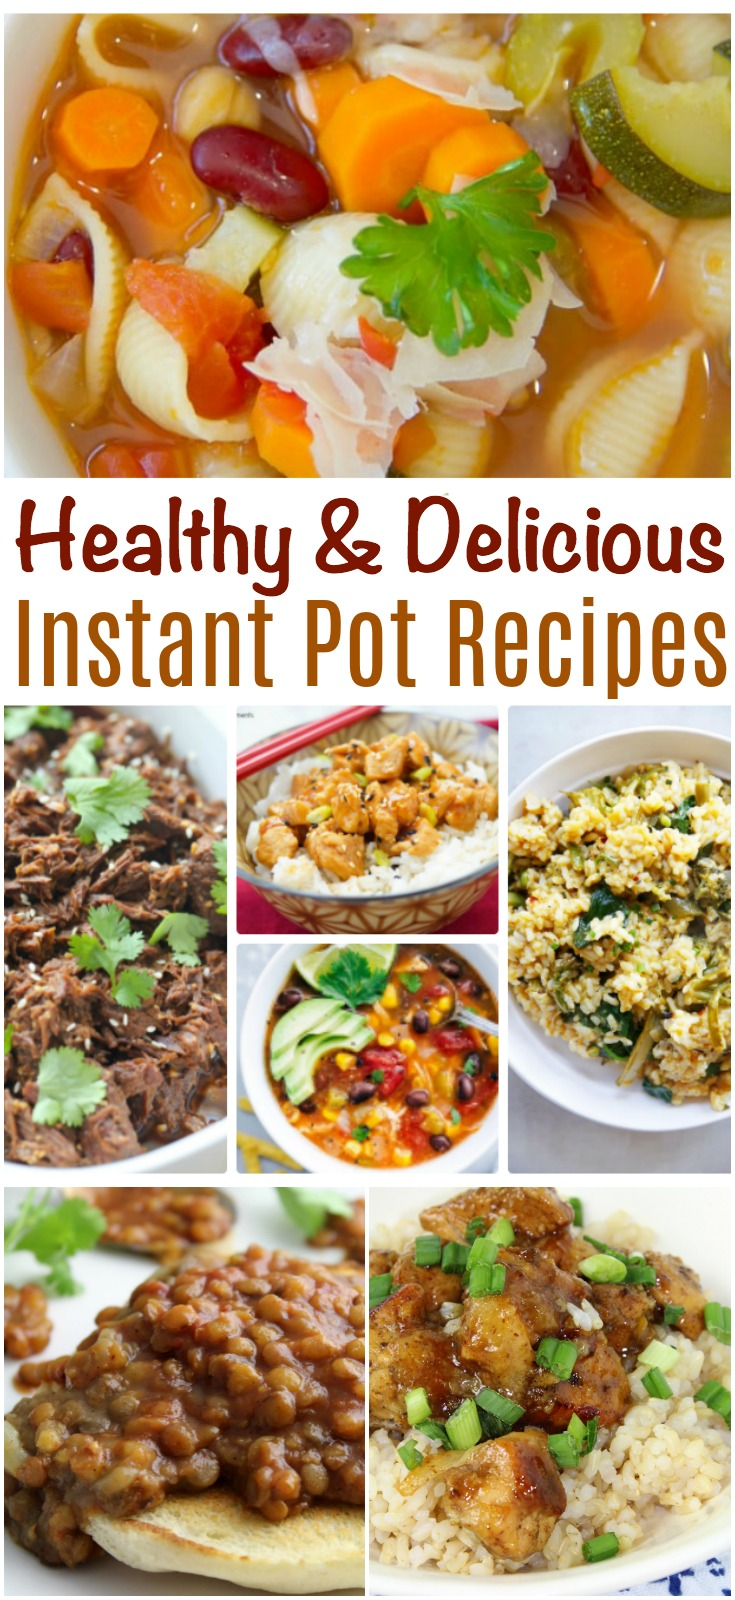 An Instant Pot can be a lifesaver in the kitchen! Here are some healthy and delicious Instant Pot Recipes you will want to incorporate into your household!